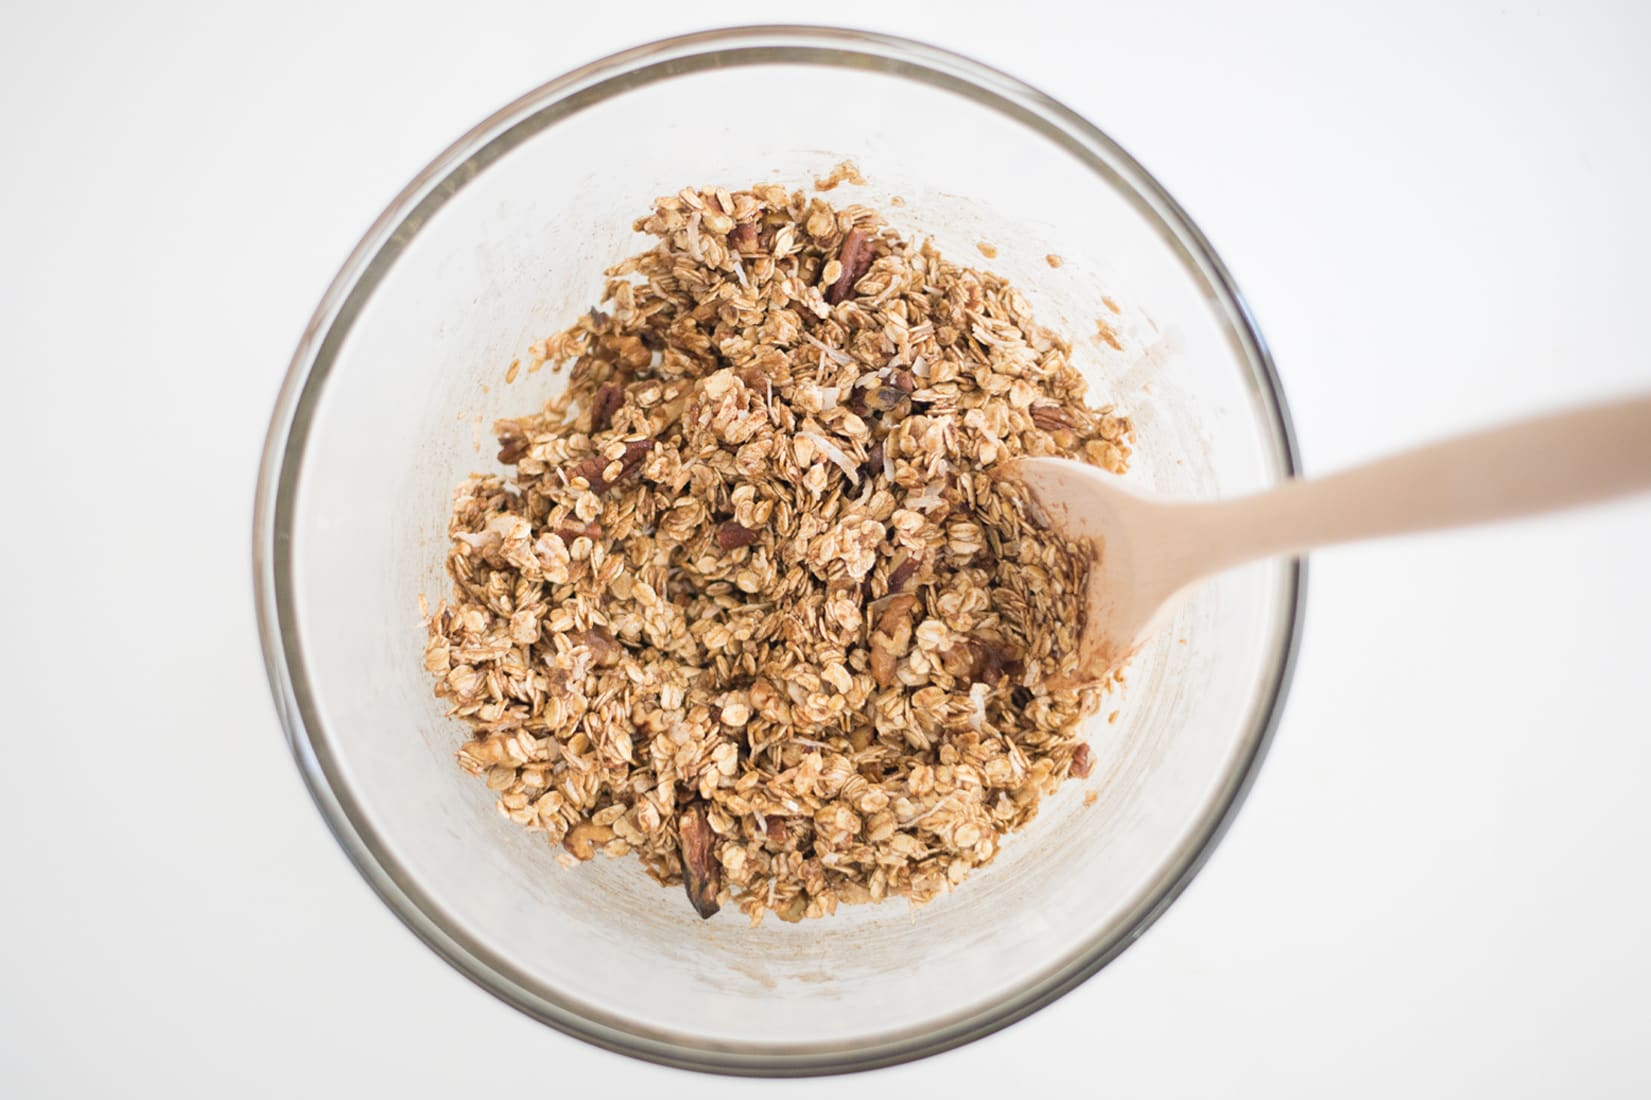 glass bowl full of oats, nuts, sugar, coconut oil, and chai spice with wooden spoon